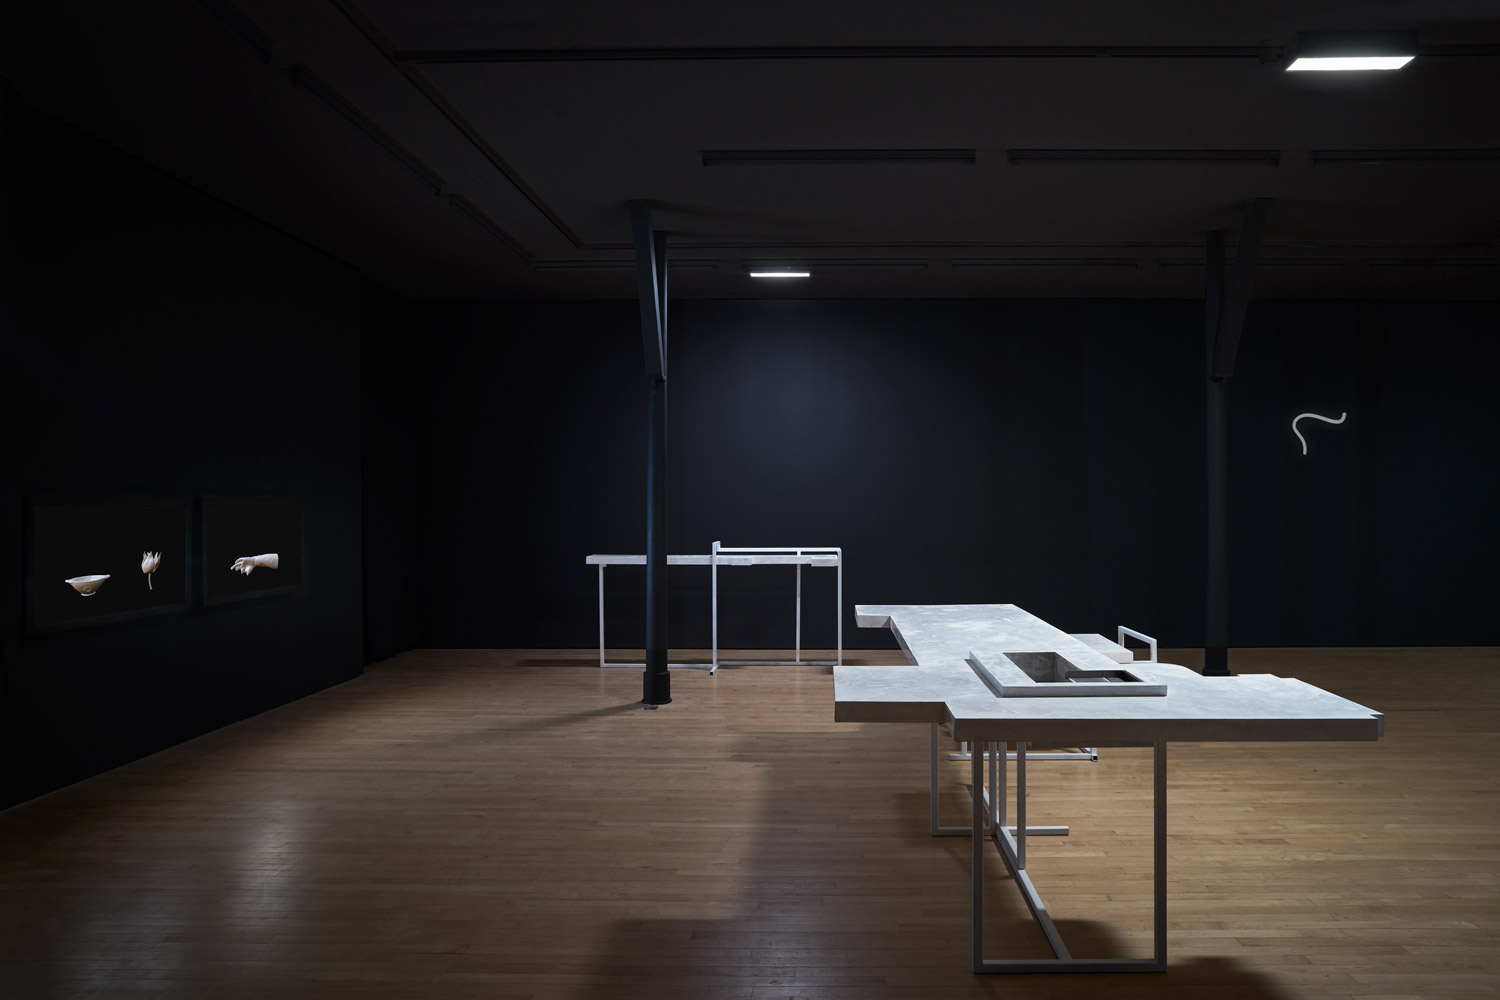 Andrea Zucchini in collaboration with Sam Smith, installation view of exhibition ¬⊙×, 2016 at Assembly Point, London.